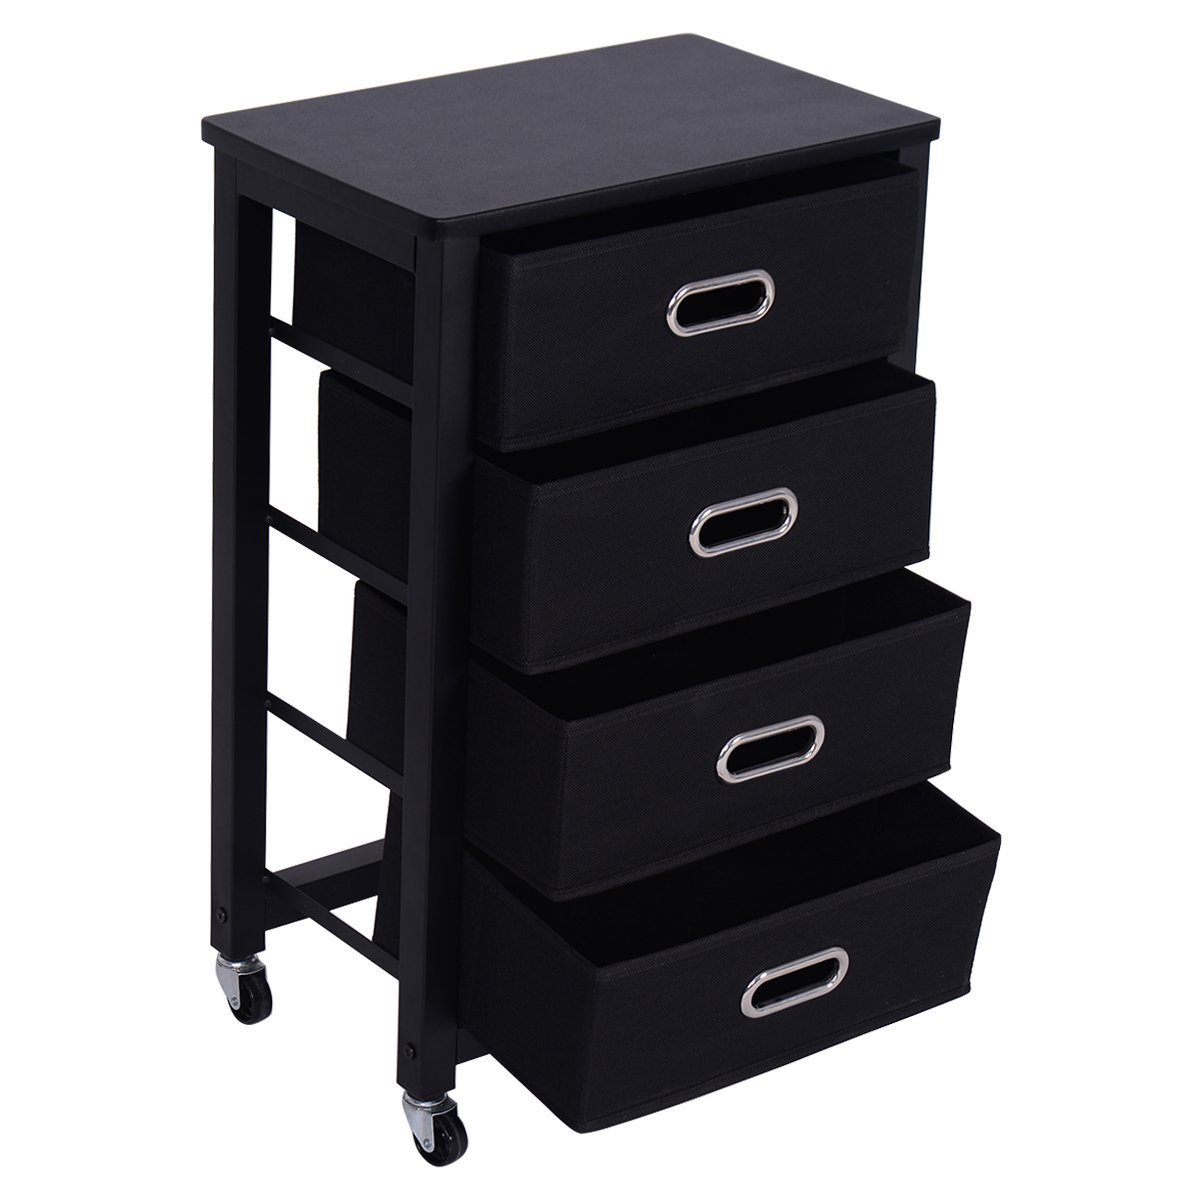 rolling file cabinets 5 best mobile storage cabinets for easy rolling homeindec 25625